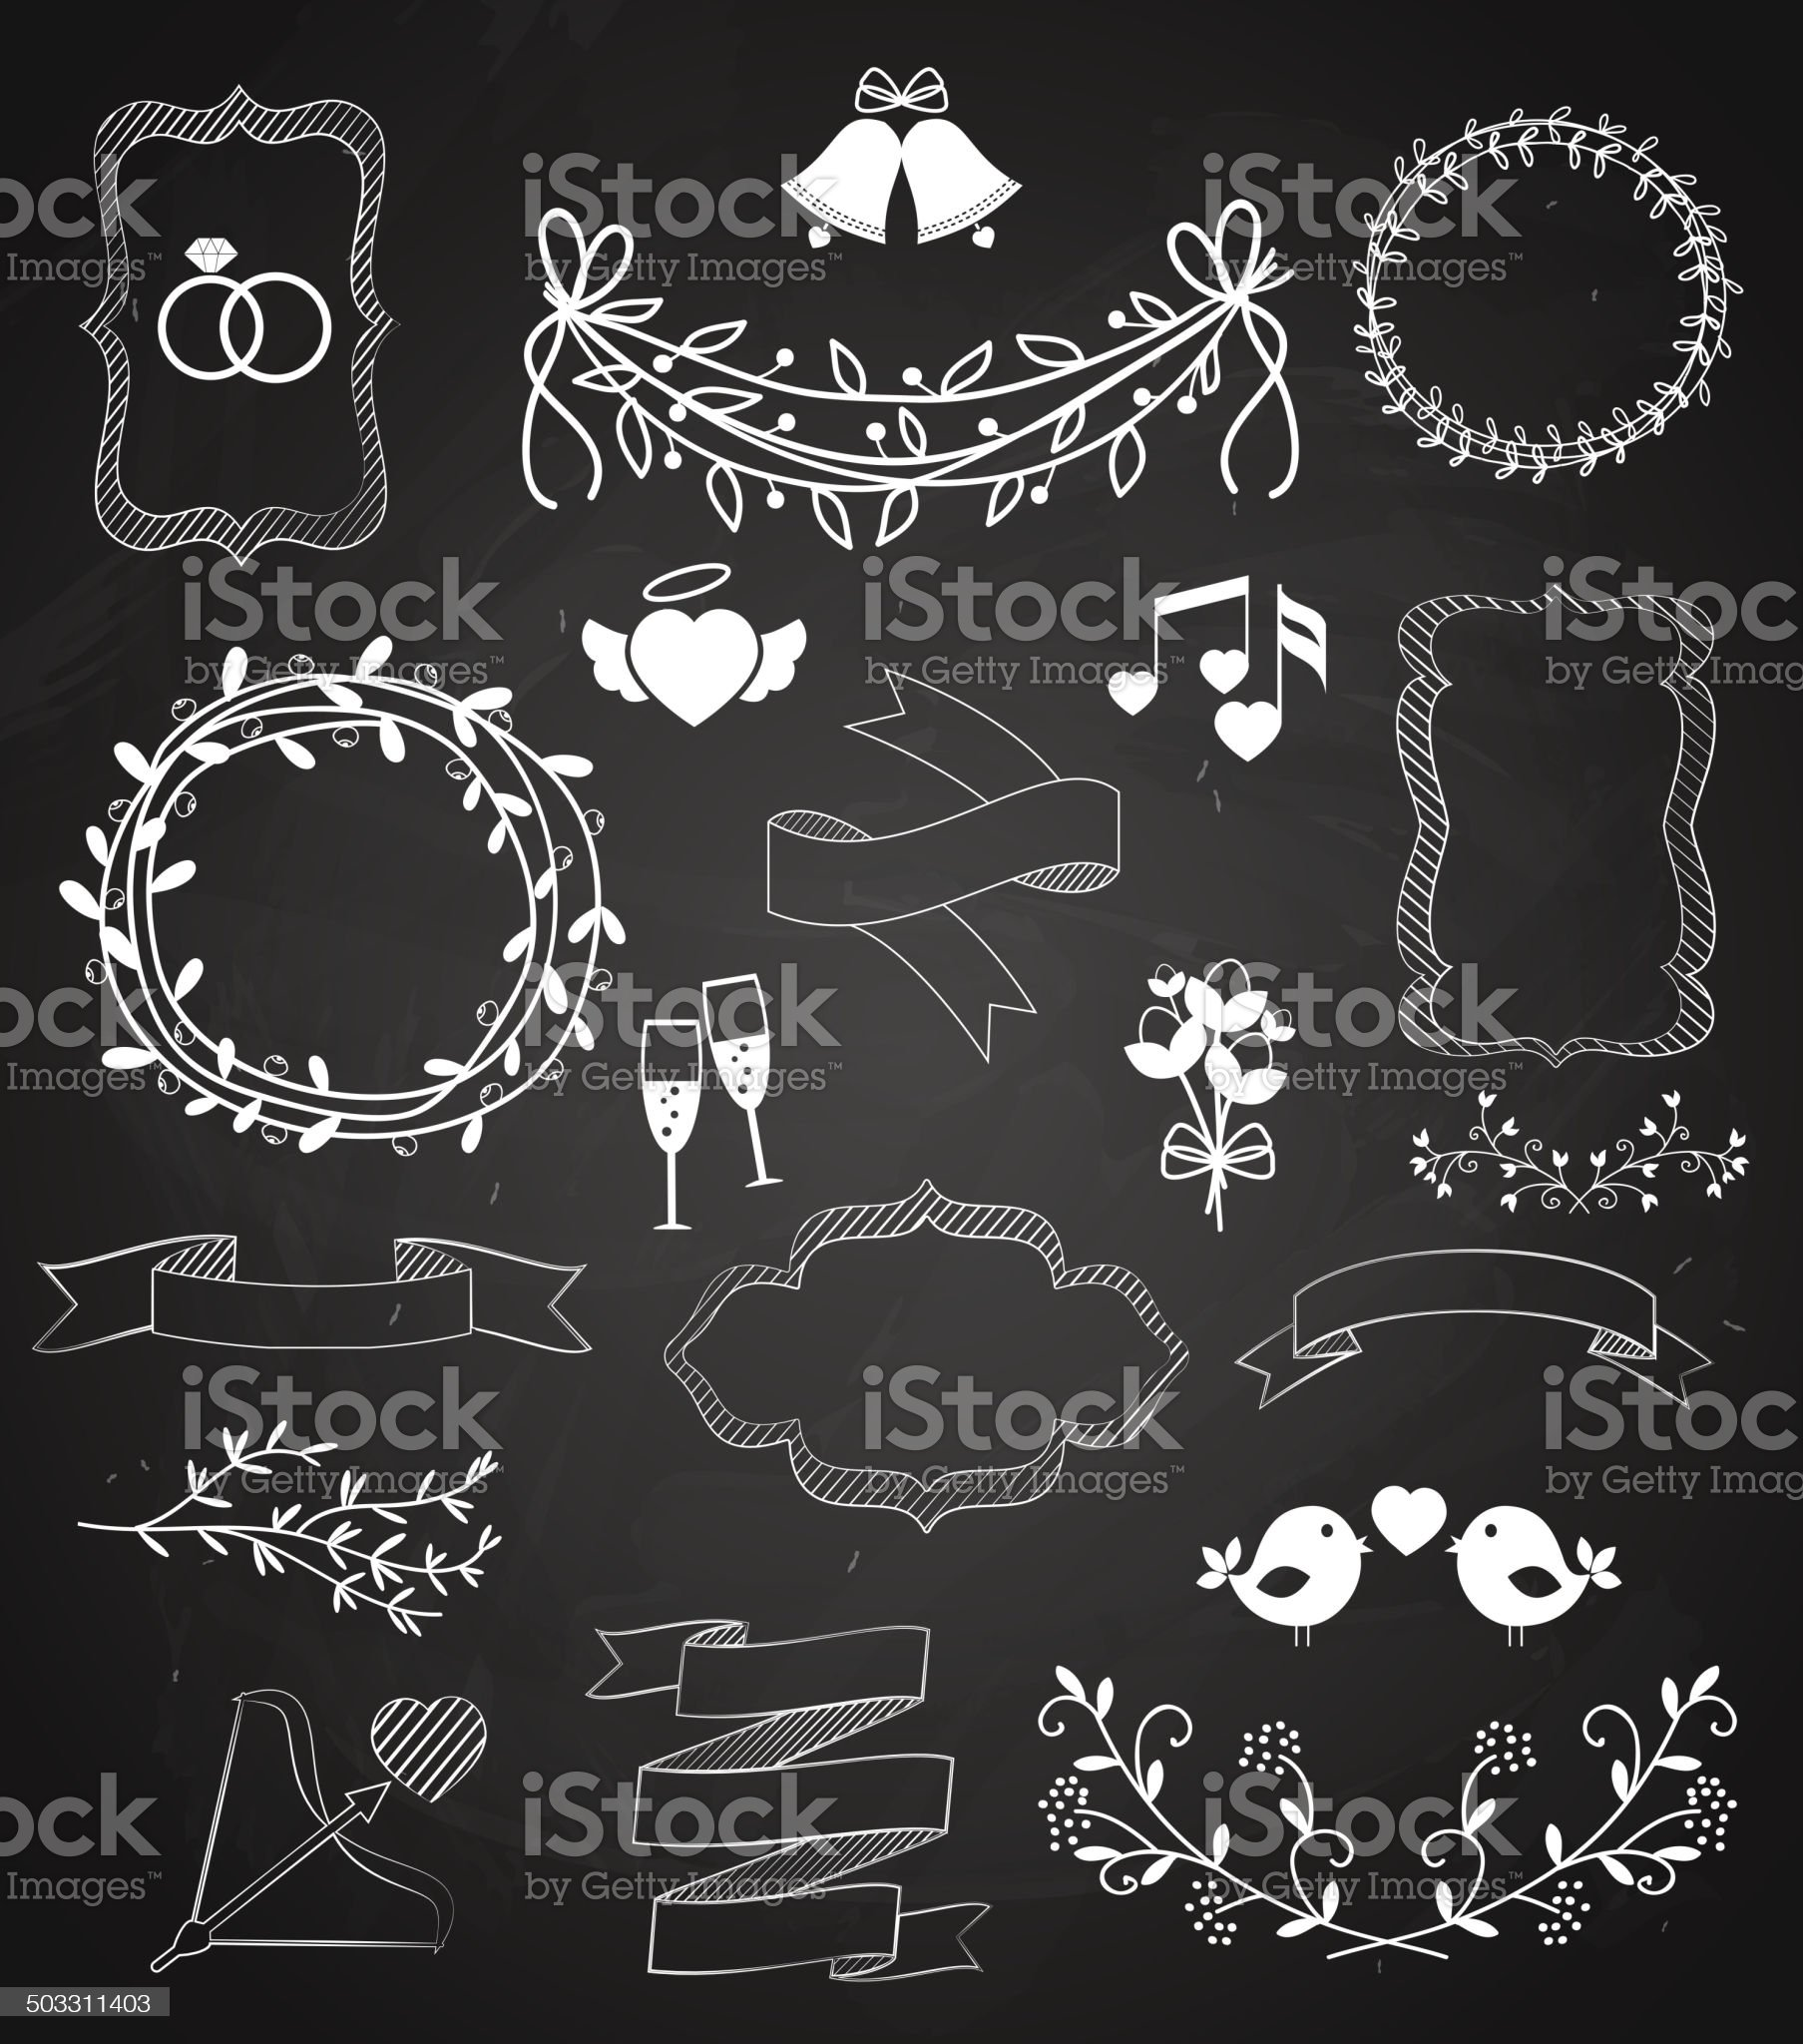 Wedding chalkboard Banners and Ribbons set royalty-free stock vector art